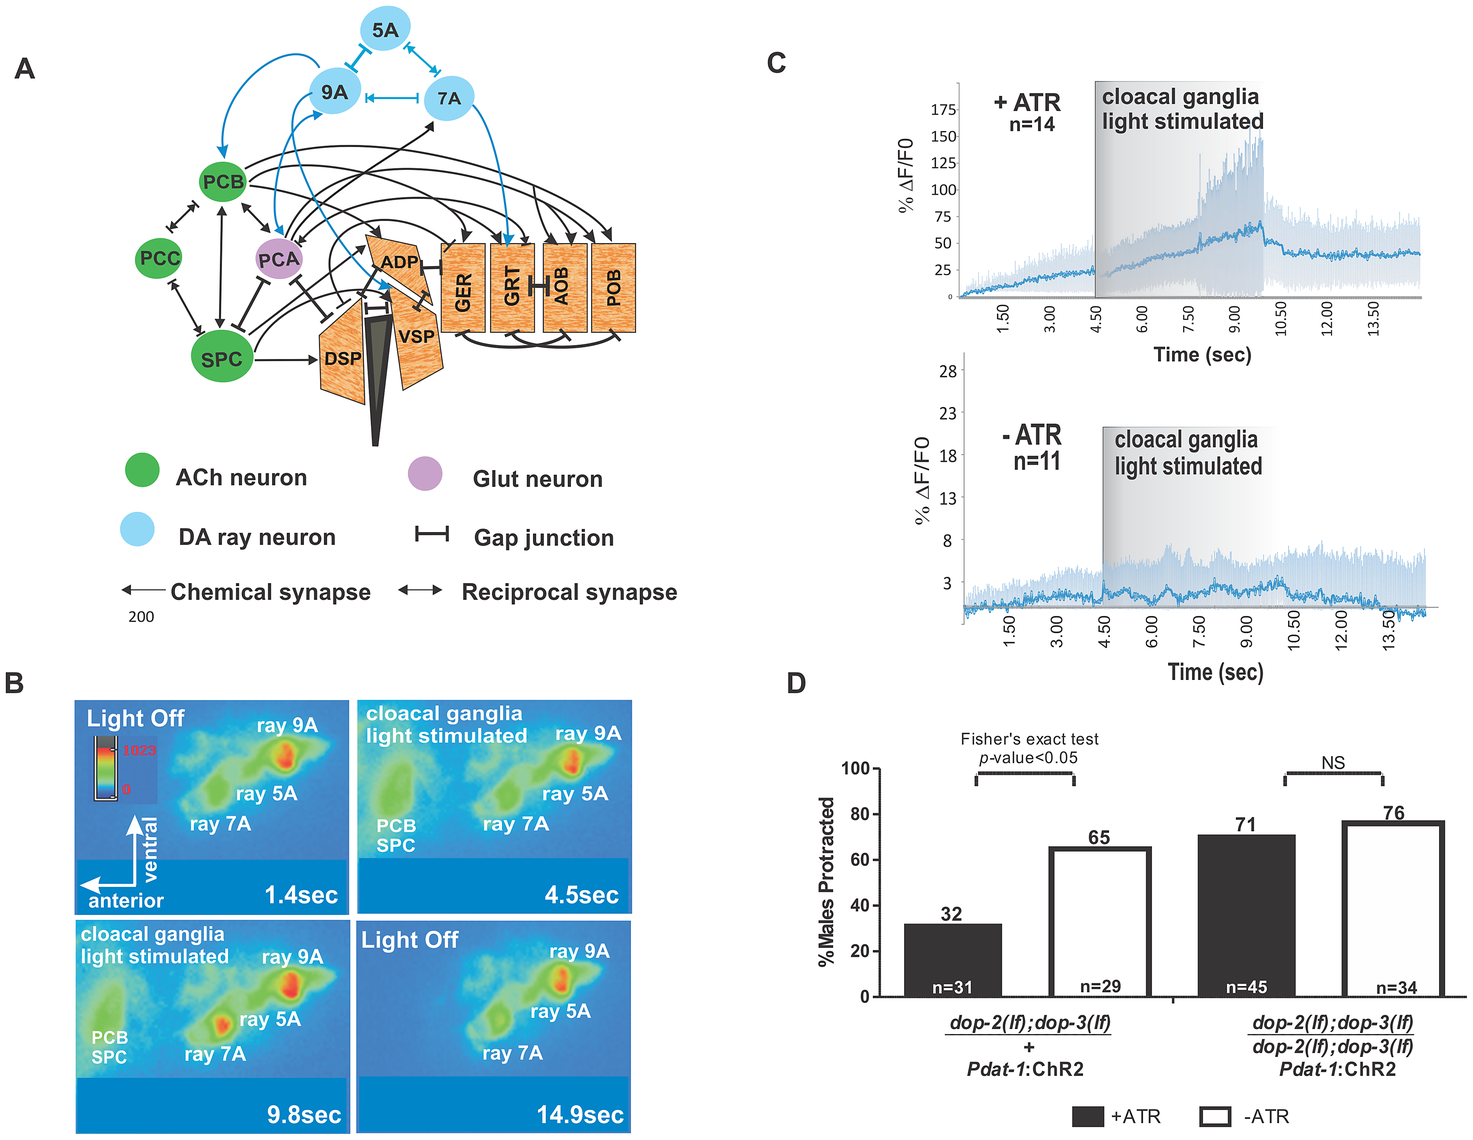 Activation of cloacal neurons increase Ca<sup>+2</sup> transients in Rn7A, and activation of DA neurons attenuate ARE-induced muscle contraction via D2-like receptors.